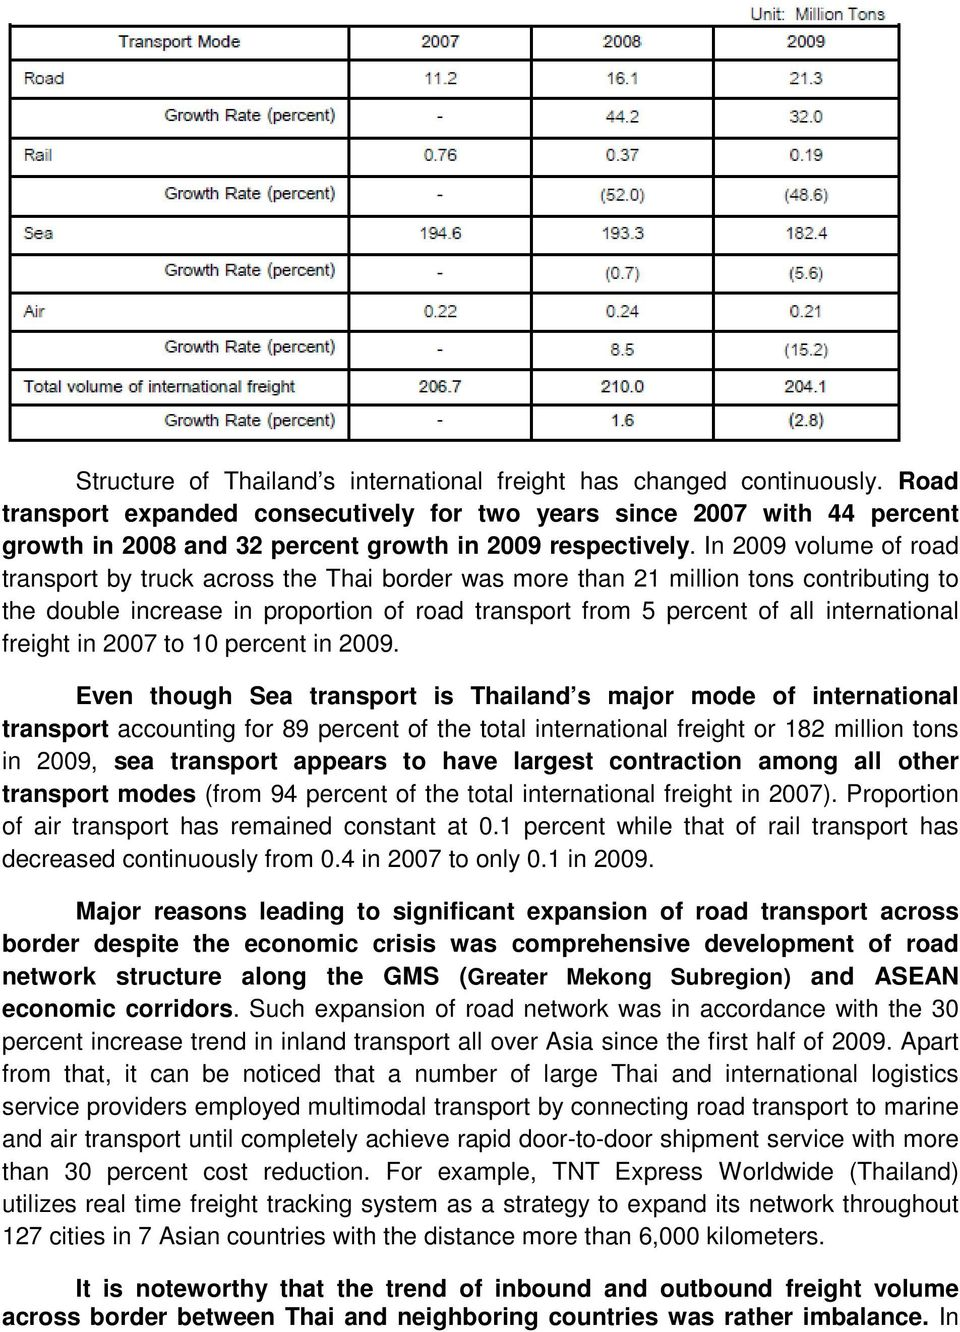 In 2009 volume of road transport by truck across the Thai border was more than 21 million tons contributing to the double increase in proportion of road transport from 5 percent of all international